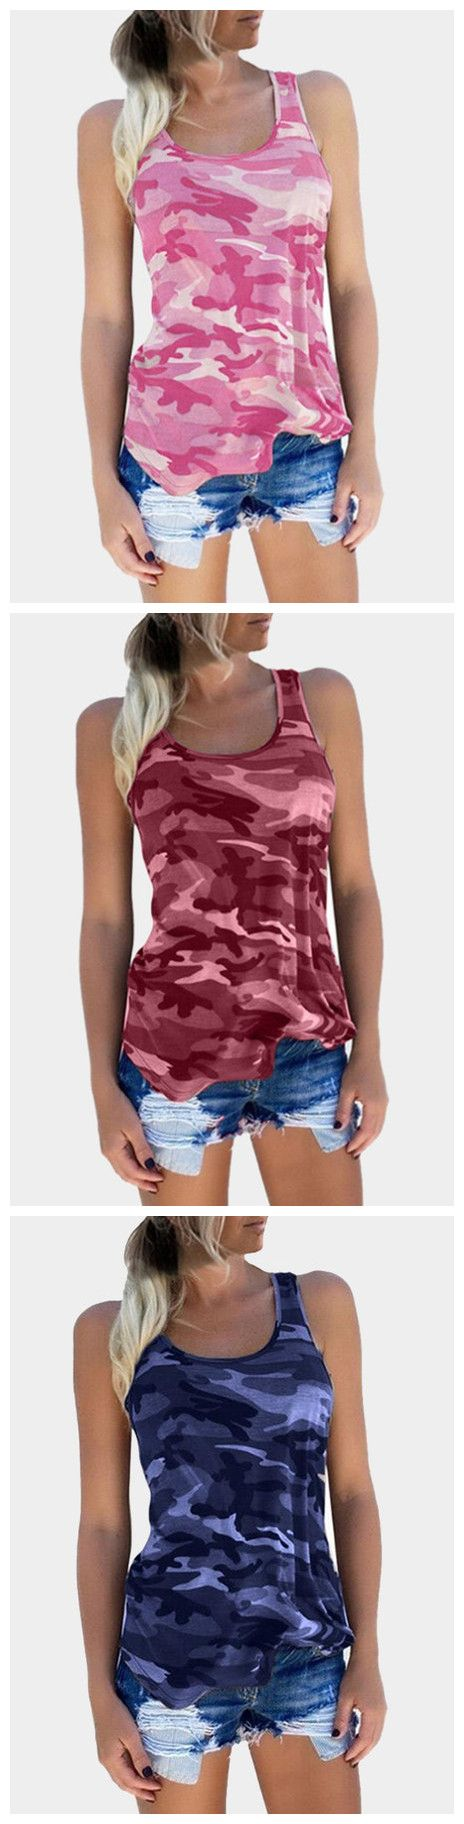 The camouflage top is a perfect casual top featuring round neck and sleeveless. Style it with shorts for a fresh look.